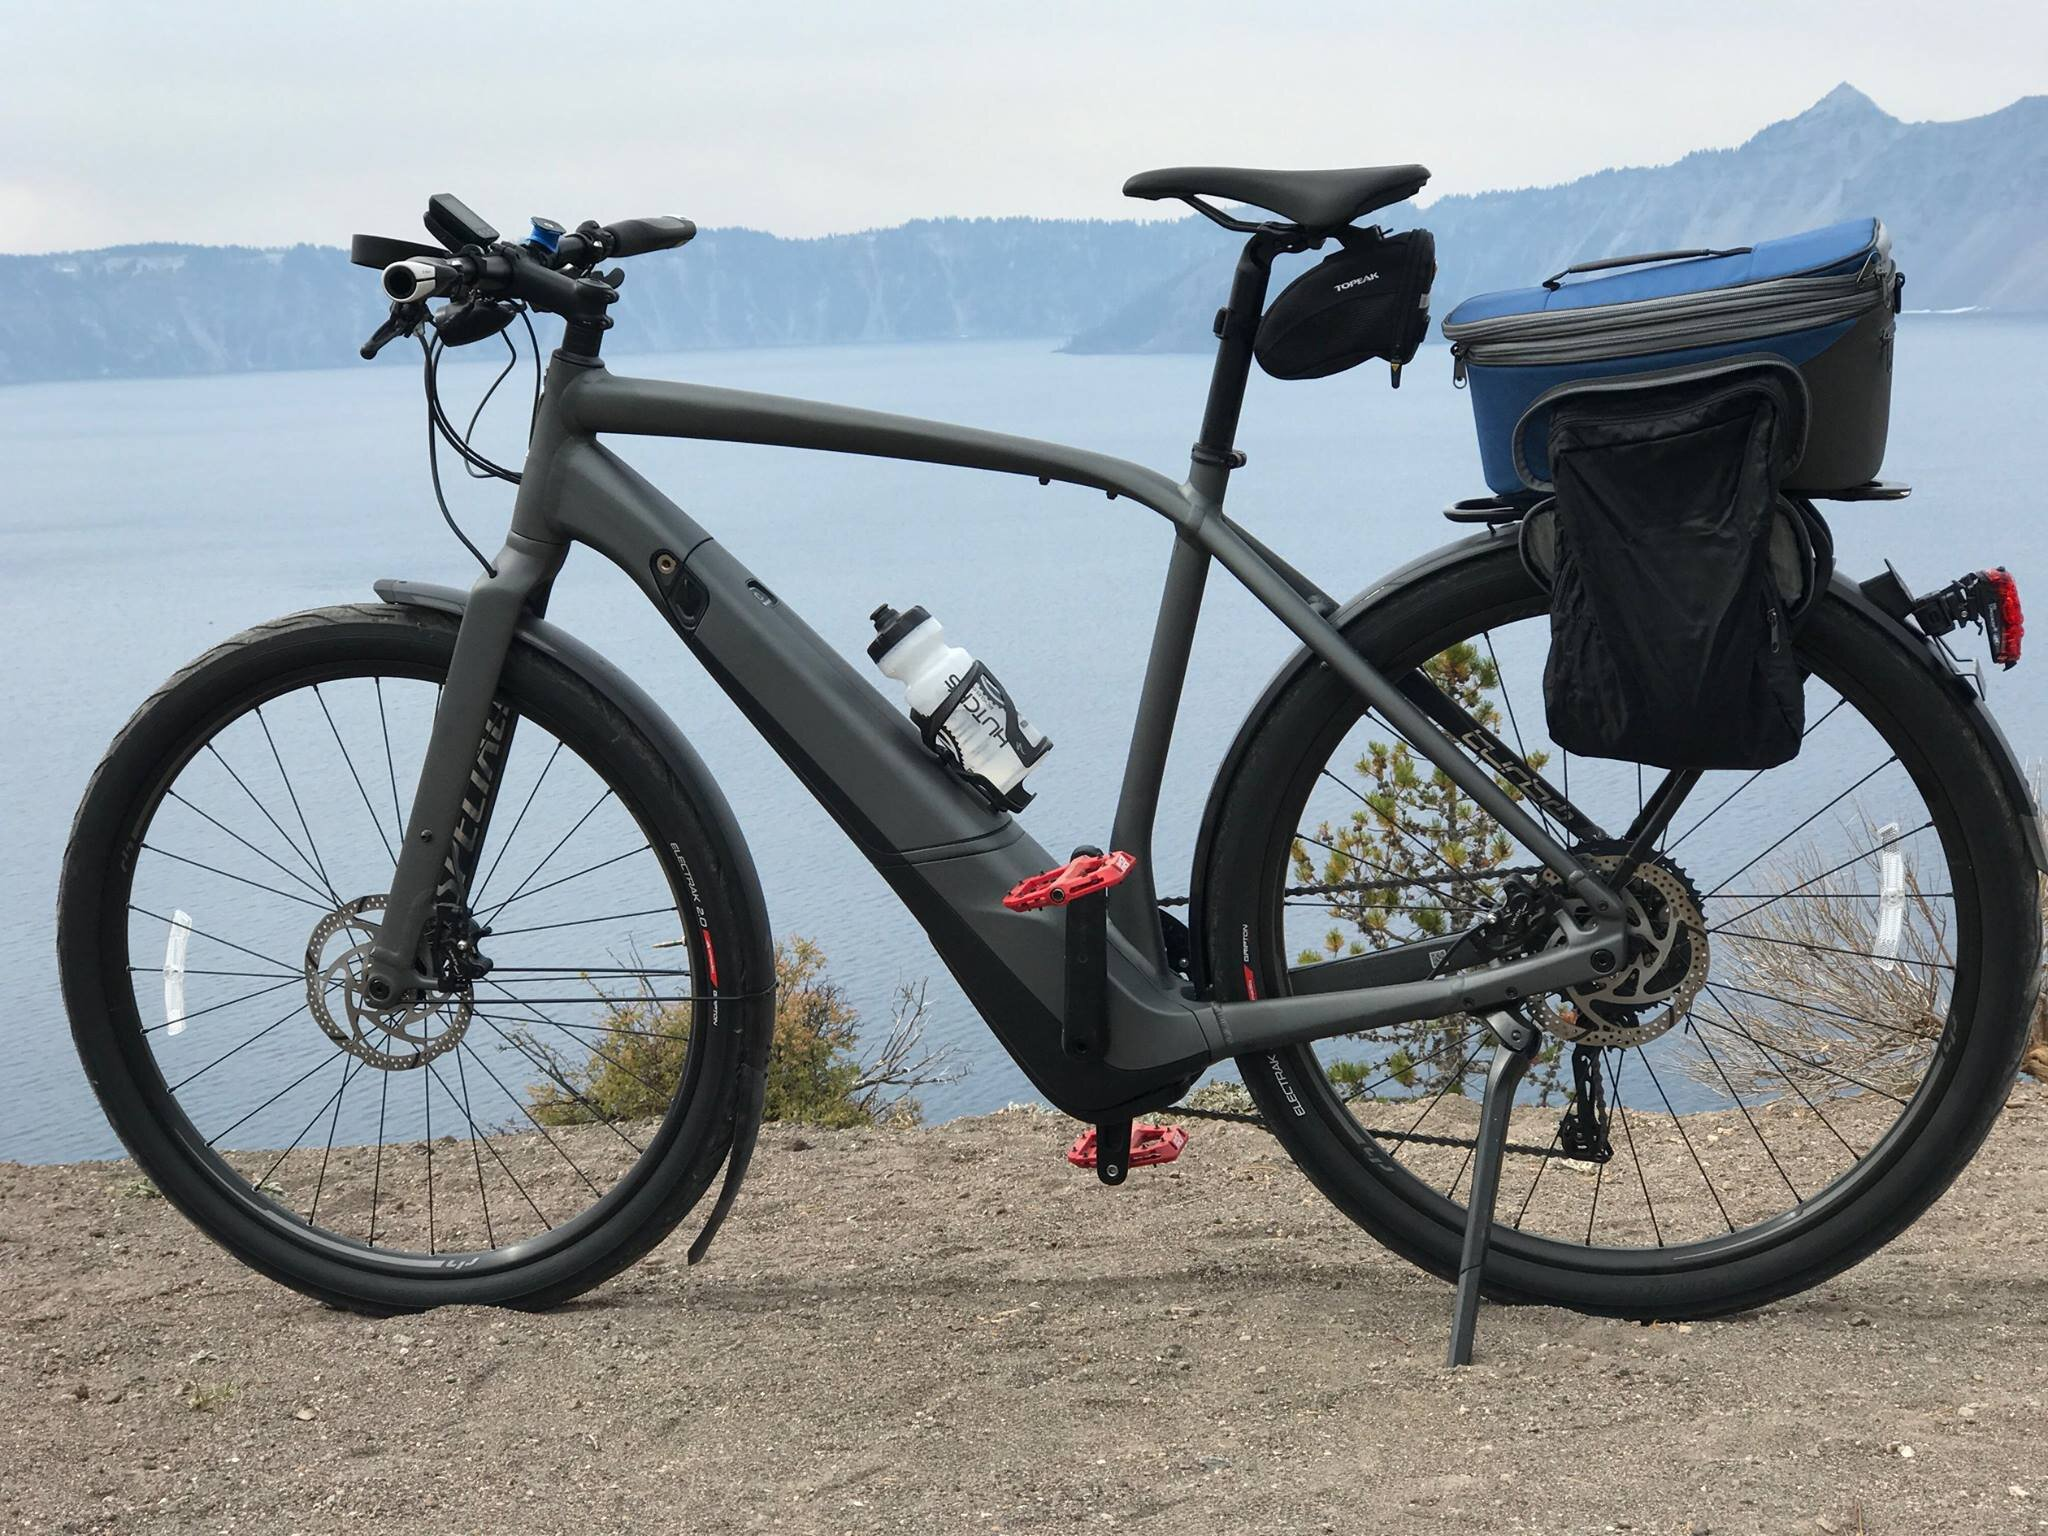 My class 3 Specialized Vado 5.0 at Crater Lake.